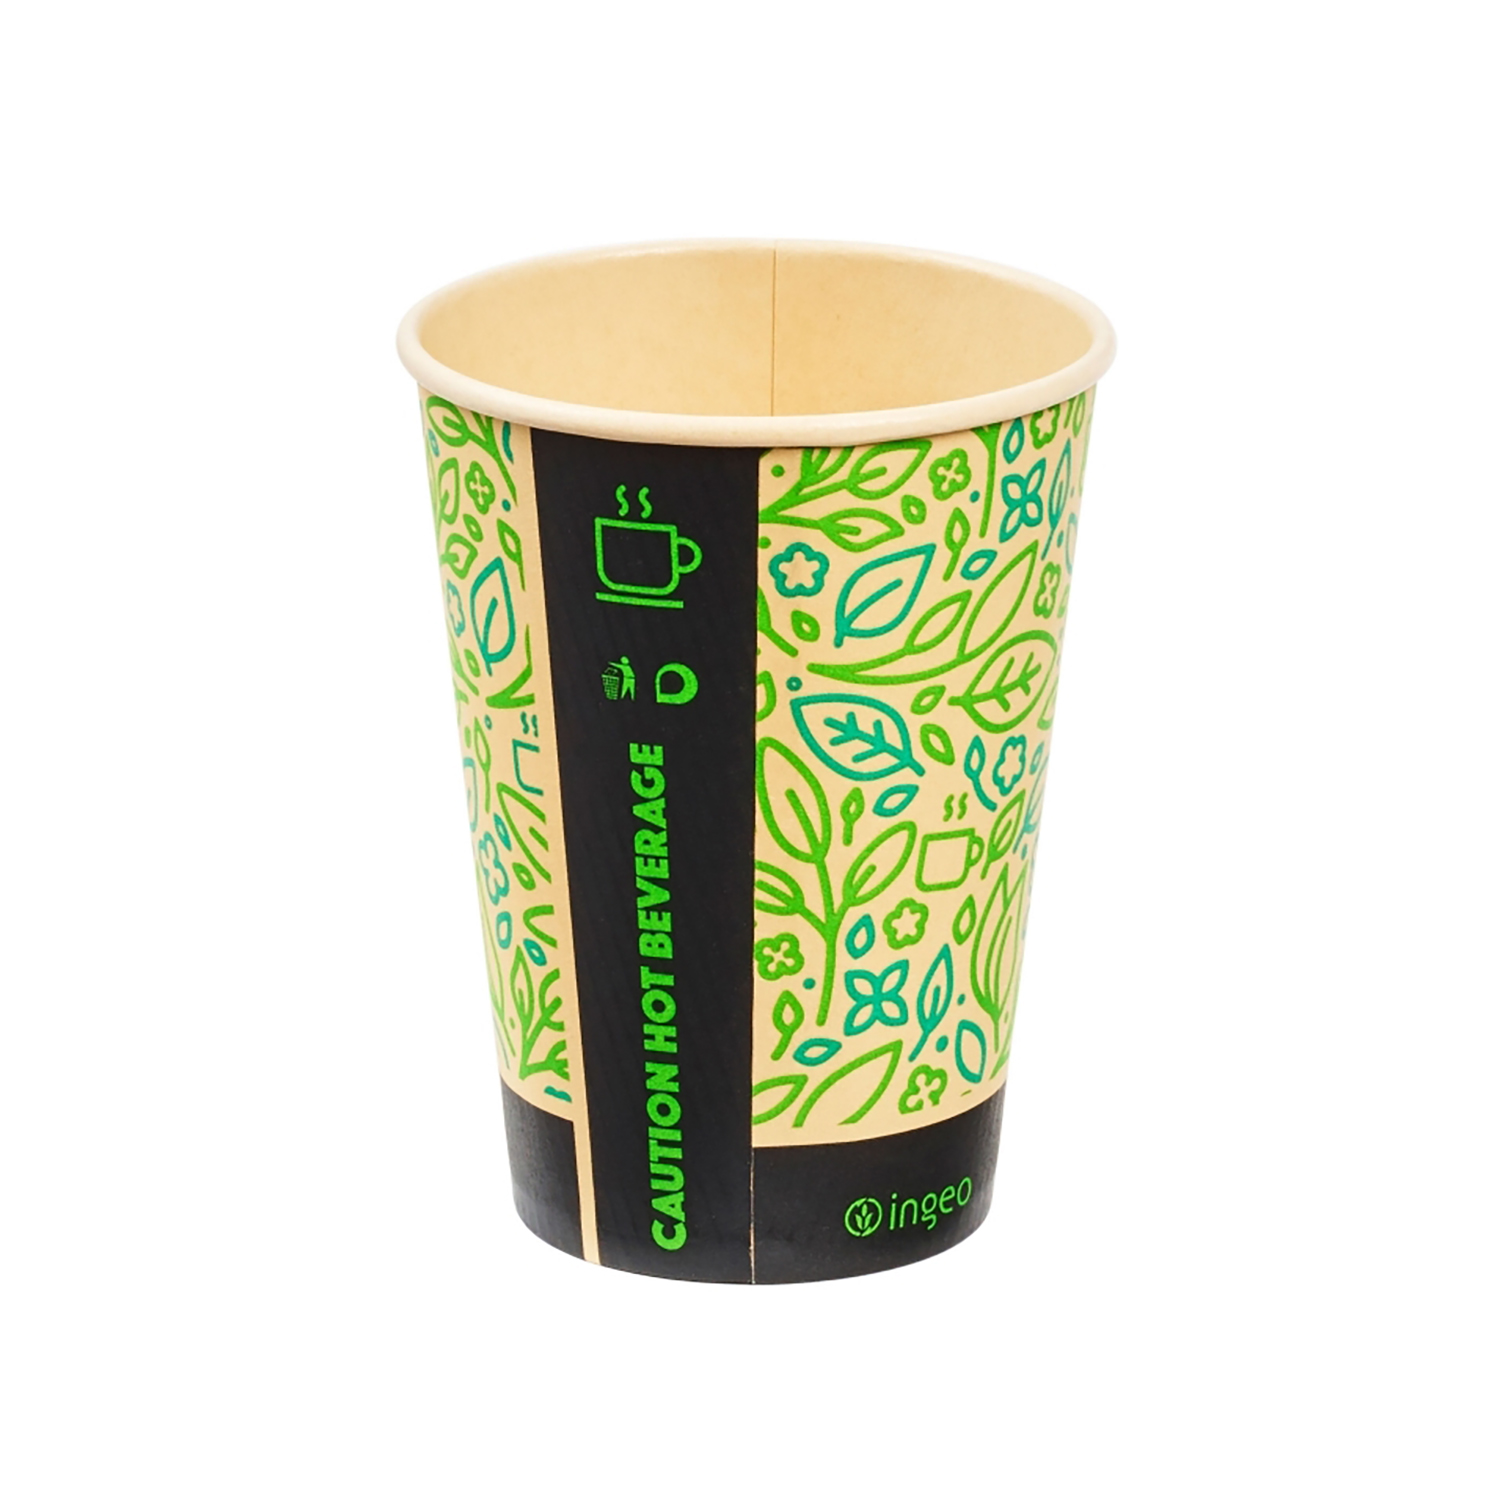 Domestic disposable cups or glasses or lids Ingeo Ultimate Eco Bamboo 12oz Biodegradable Disposable Cups Ref 0511224 Pack 25